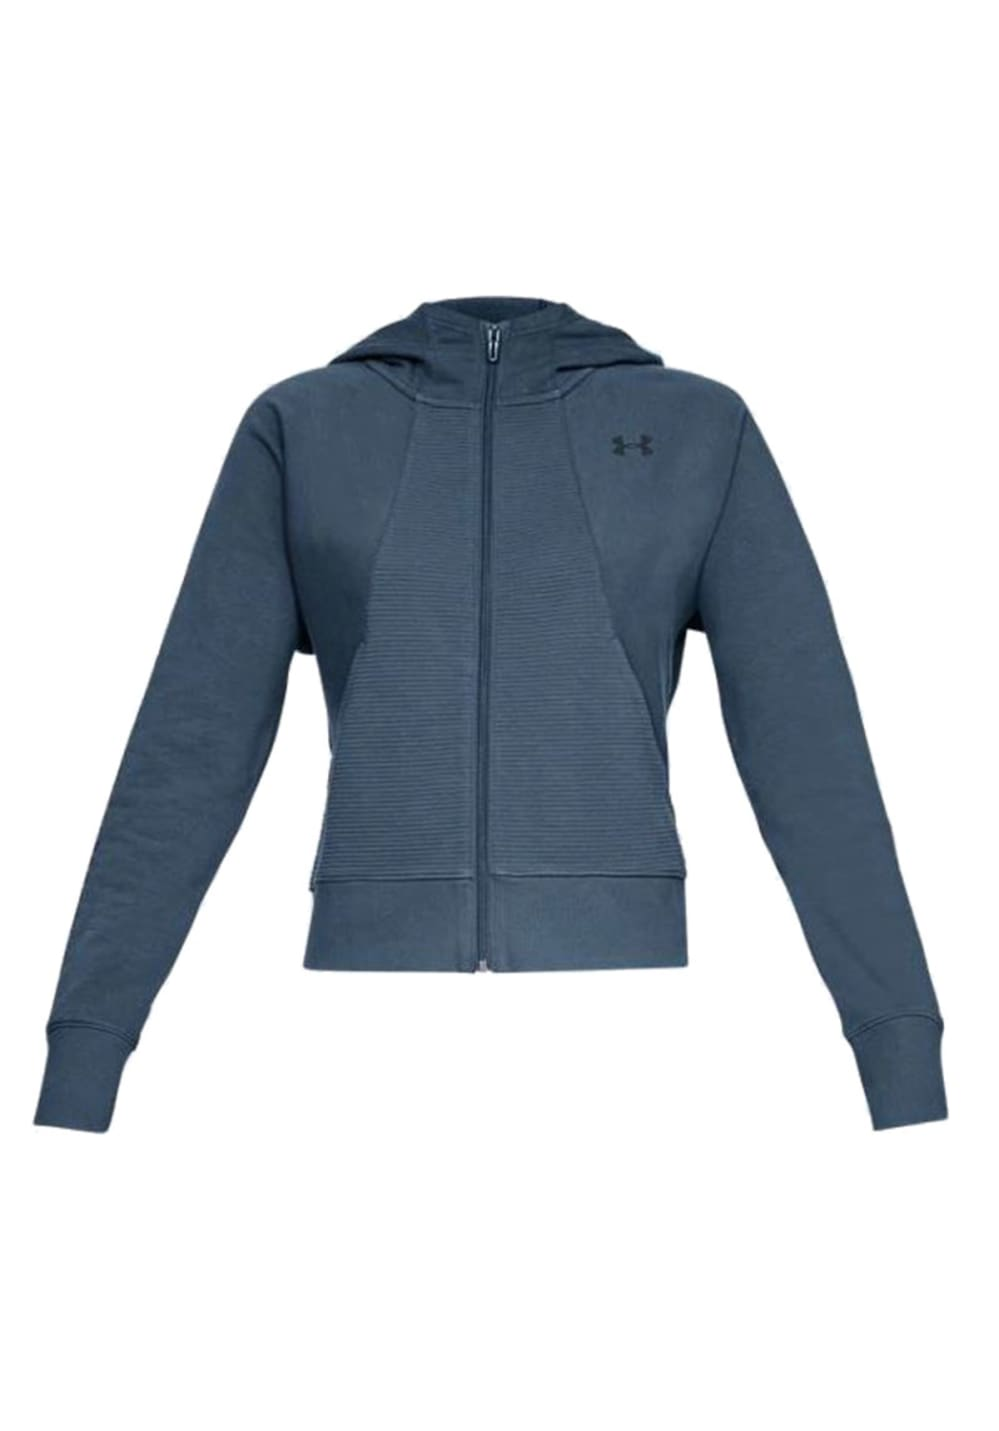 Under Armour Tb Ottoman Fleece Full Zip Grapic Warm - Laufjacken für Damen - Grau